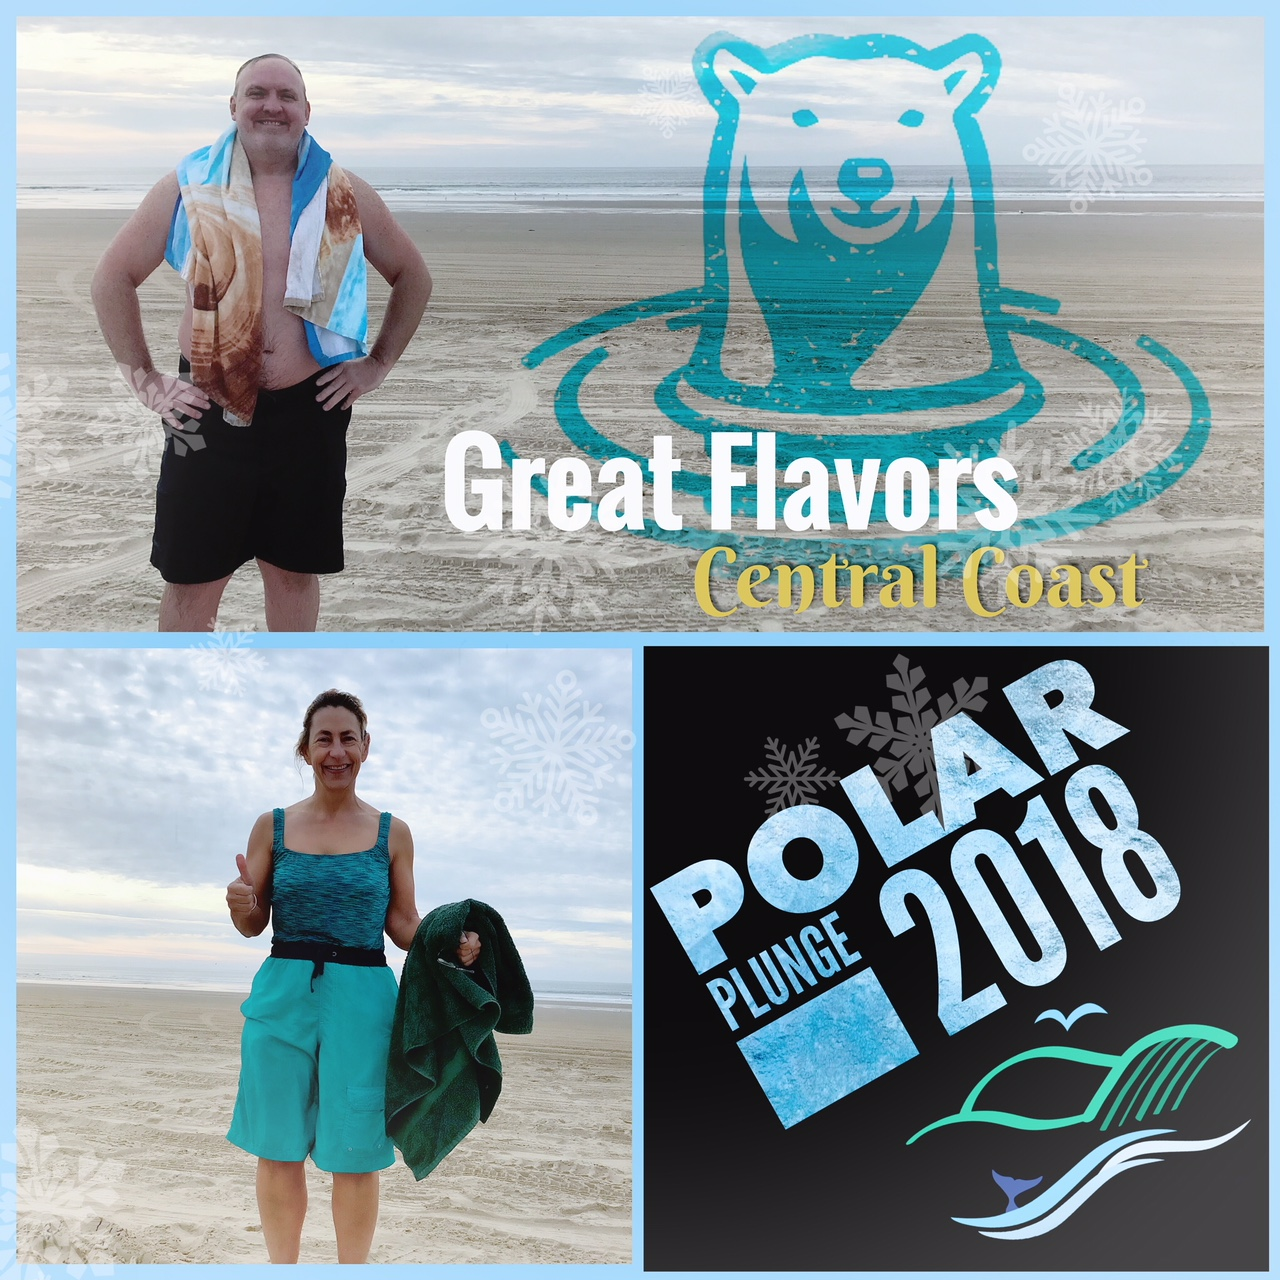 Great Flavors polar plunge image